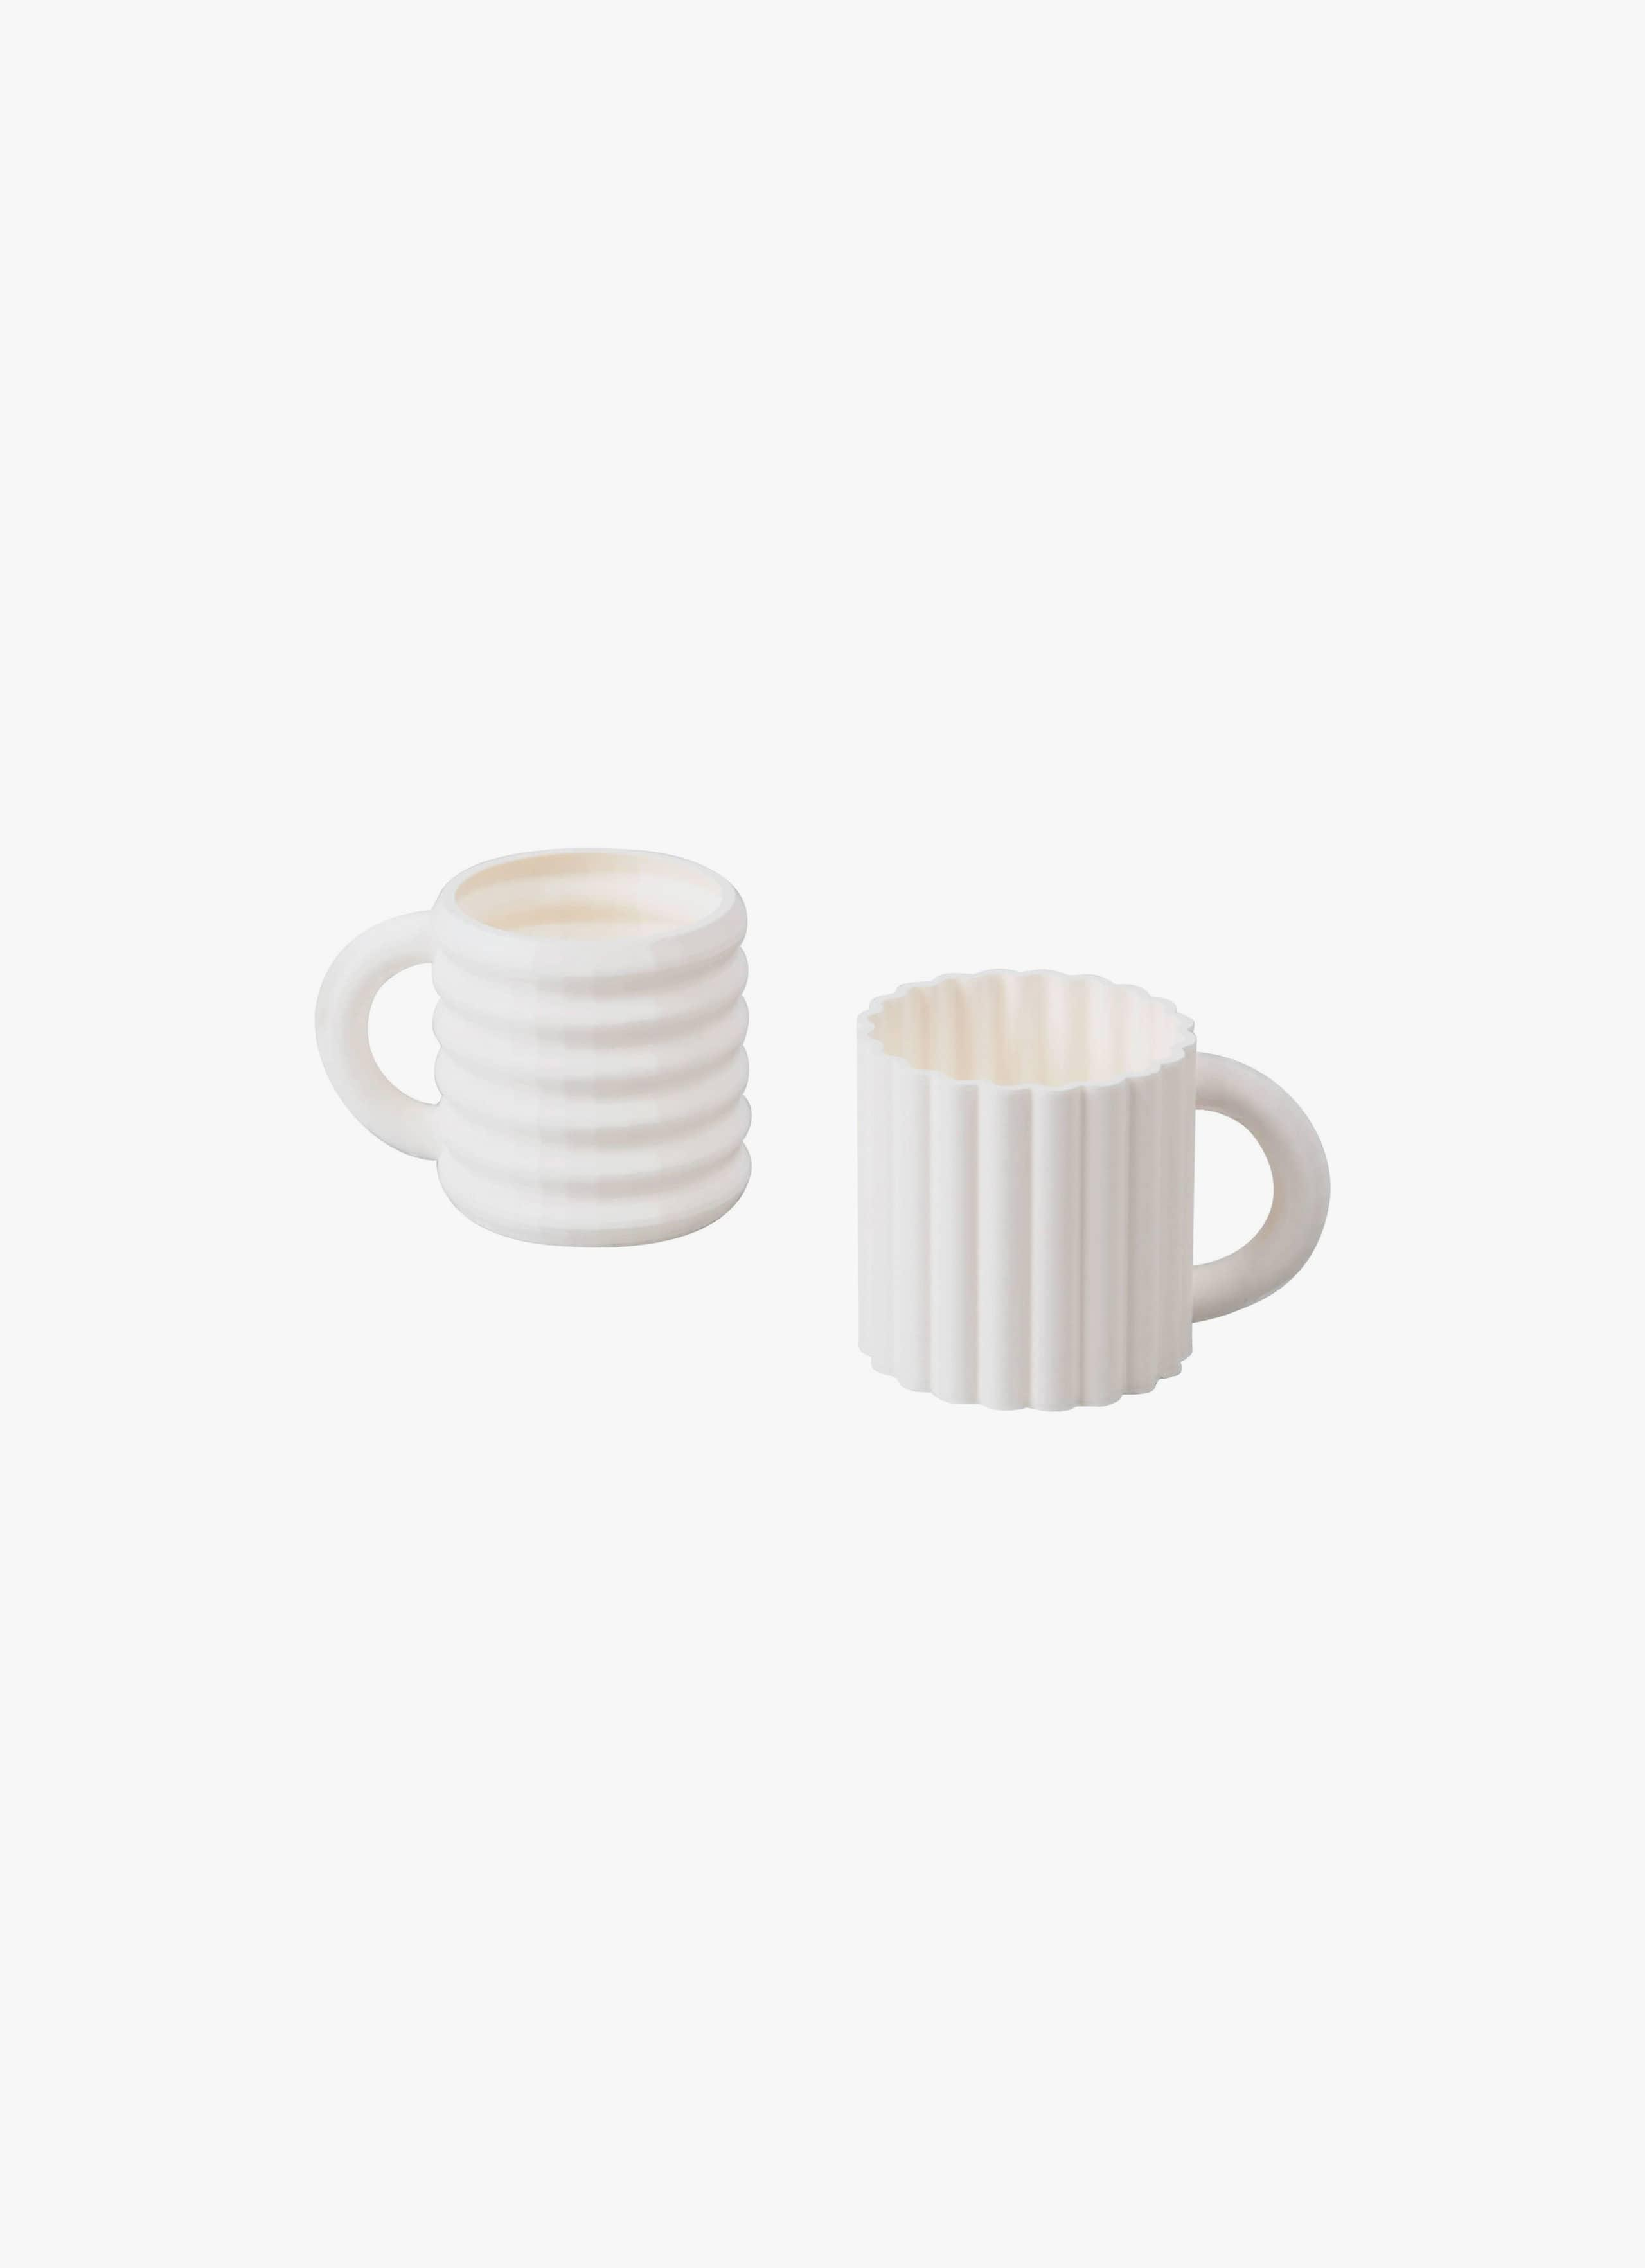 Form and Seek - Ripple Espresso Cups - Set of two